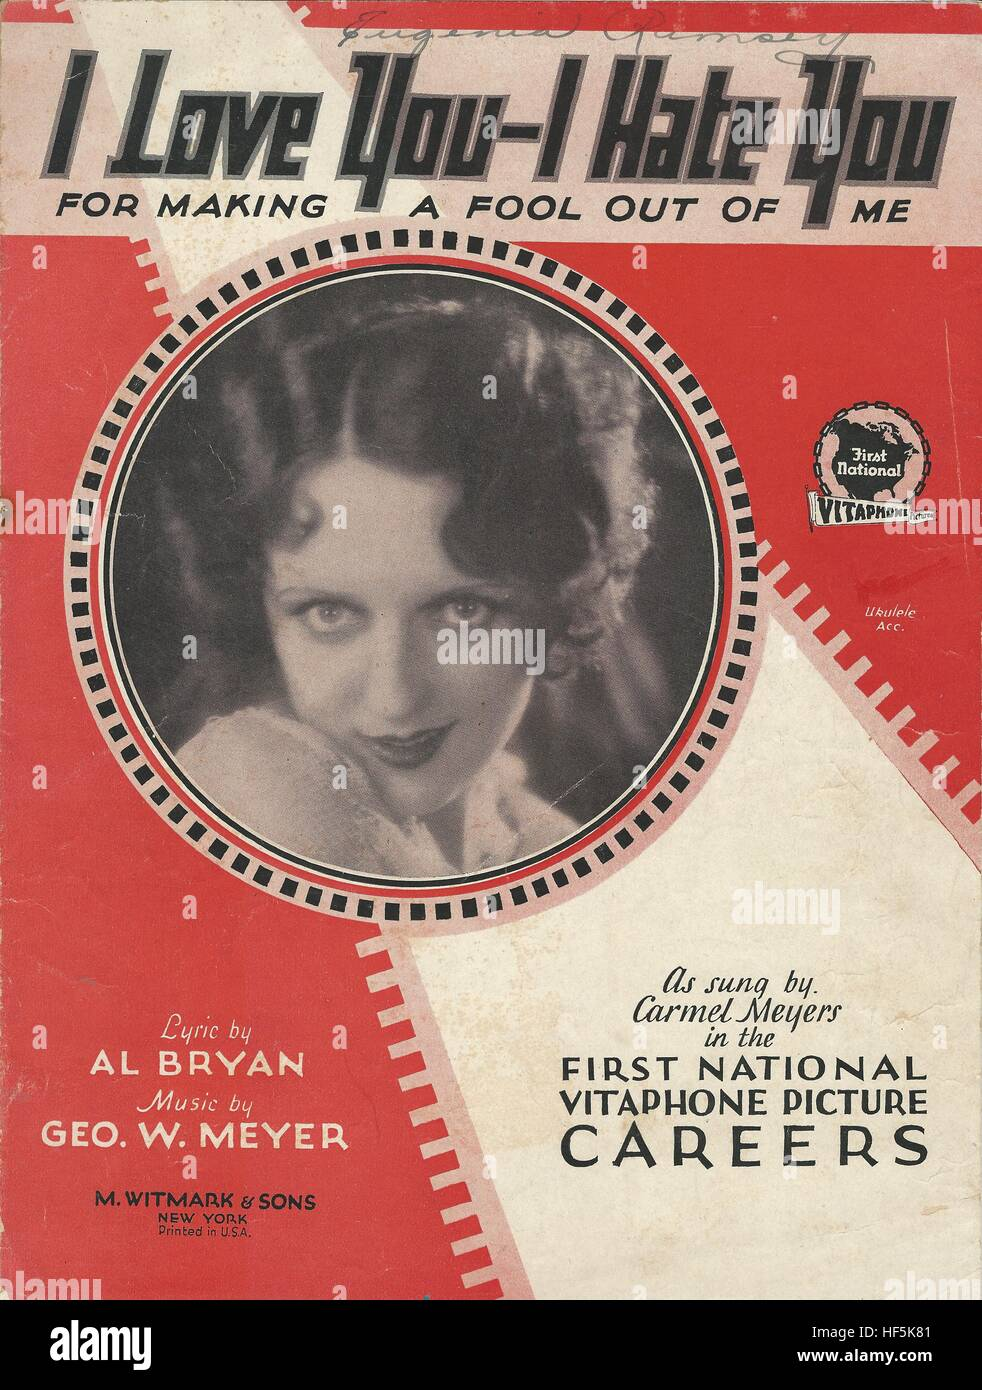 'I Love You—I Hate You' from 1929 movie 'Careers' Sheet Music Cover - Stock Image